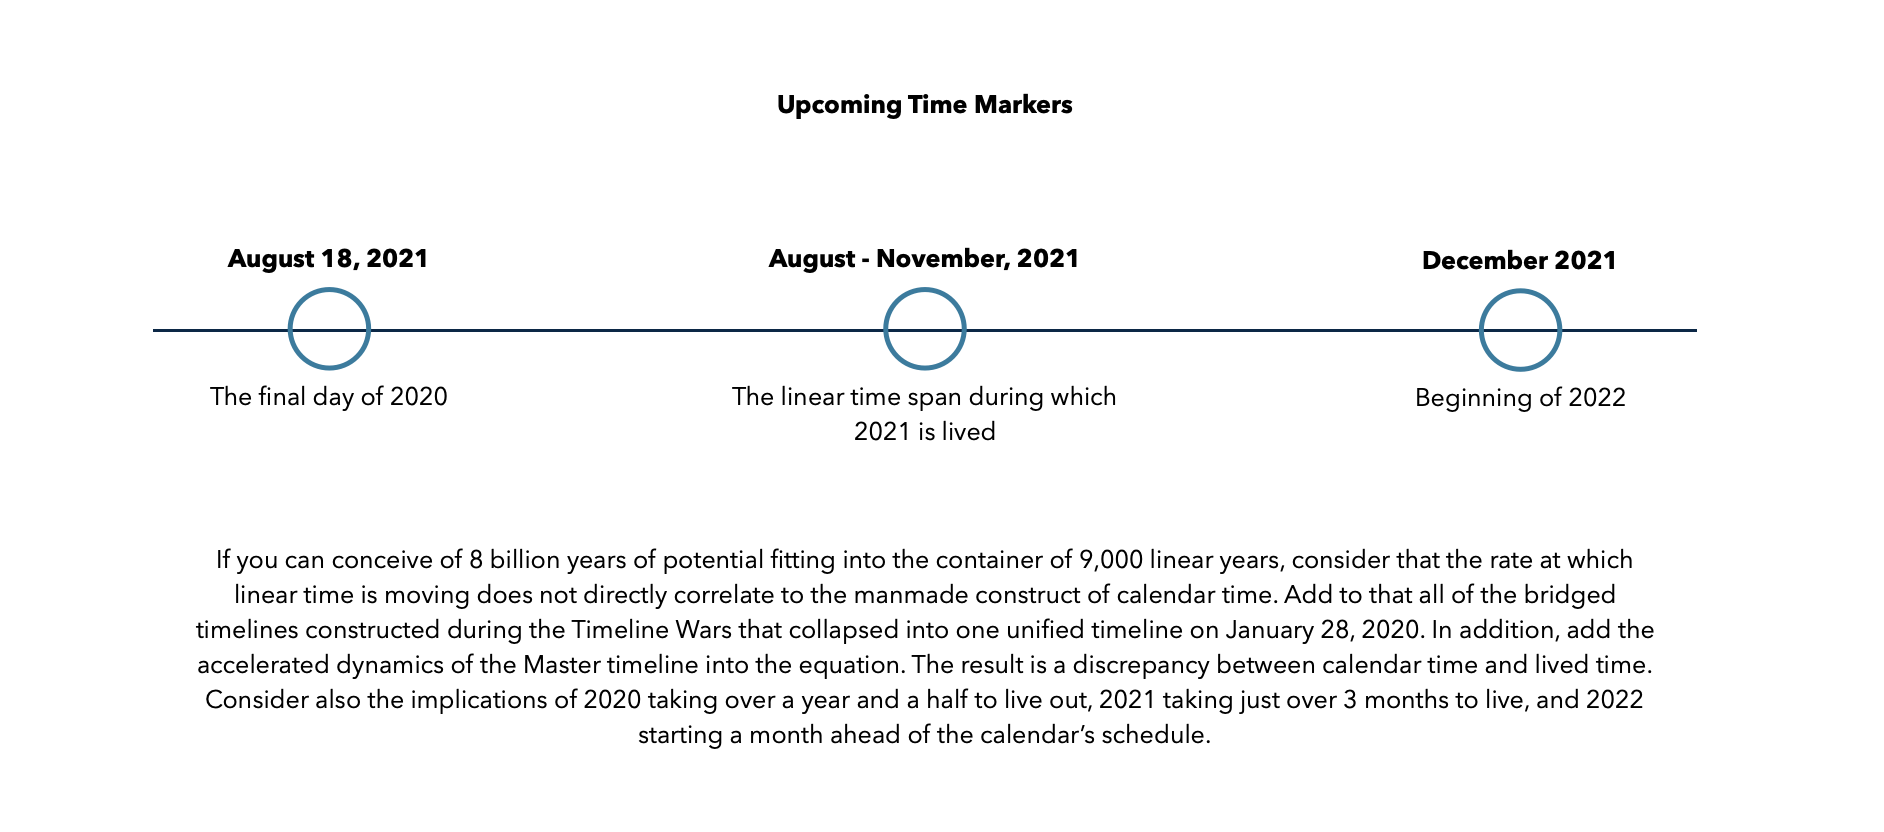 Upcoming Time Markers